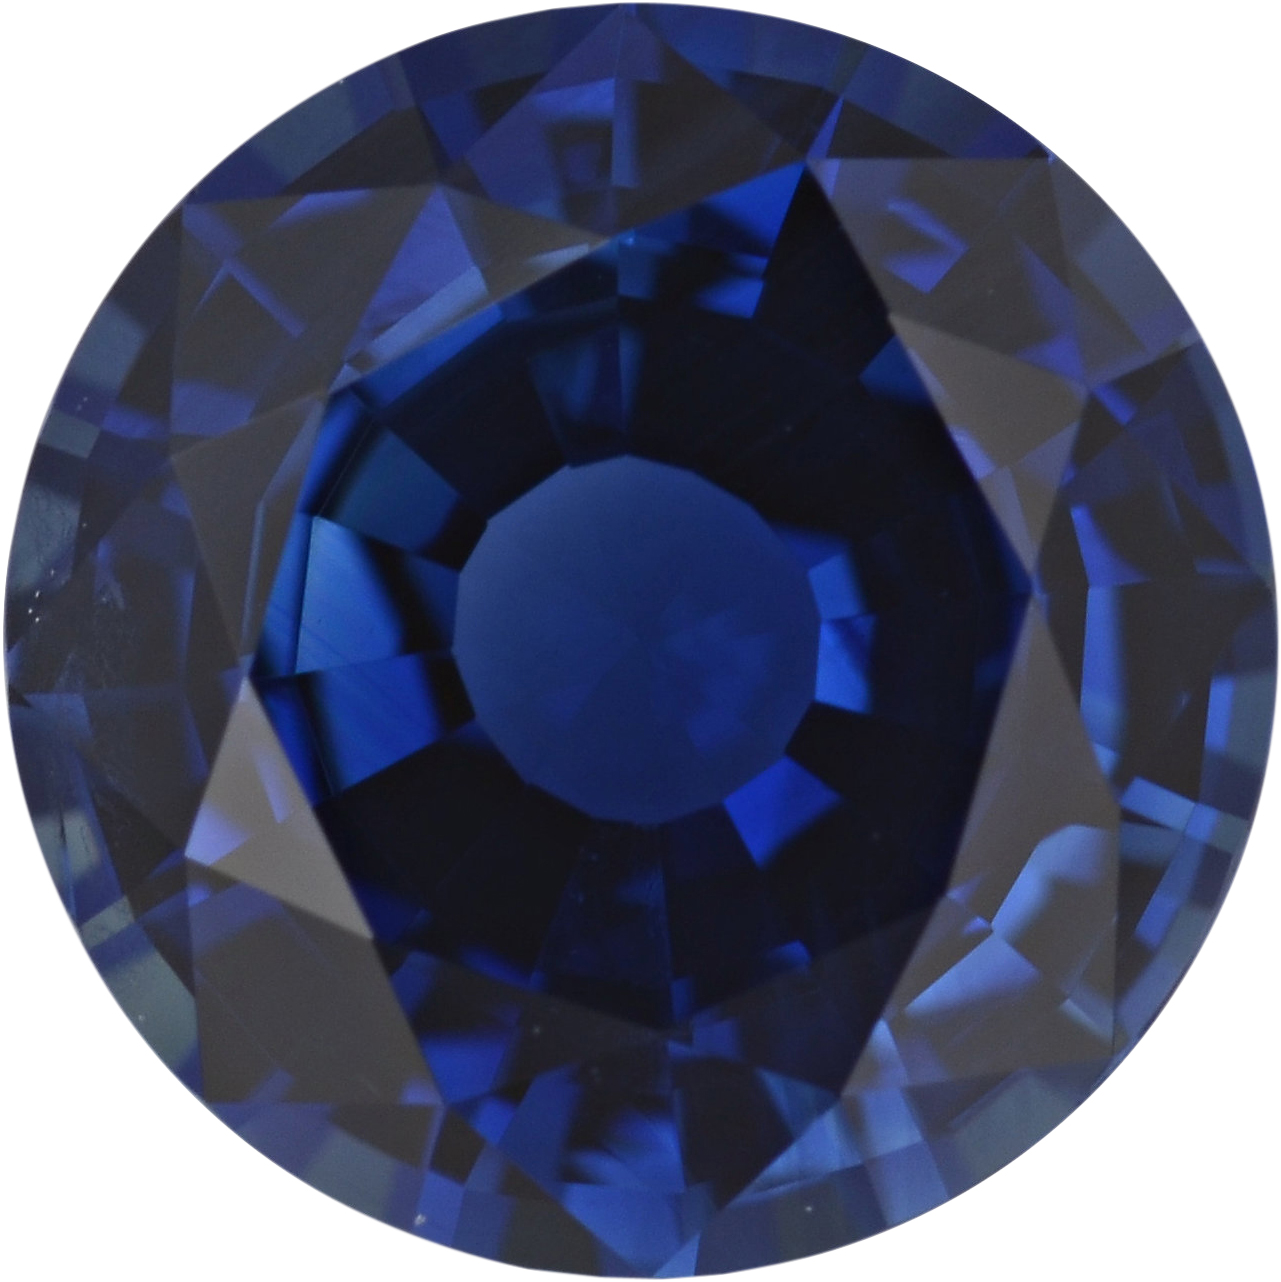 1.43 carats Blue Loose Sapphire Gemstone in Round Cut, 6.89 mm